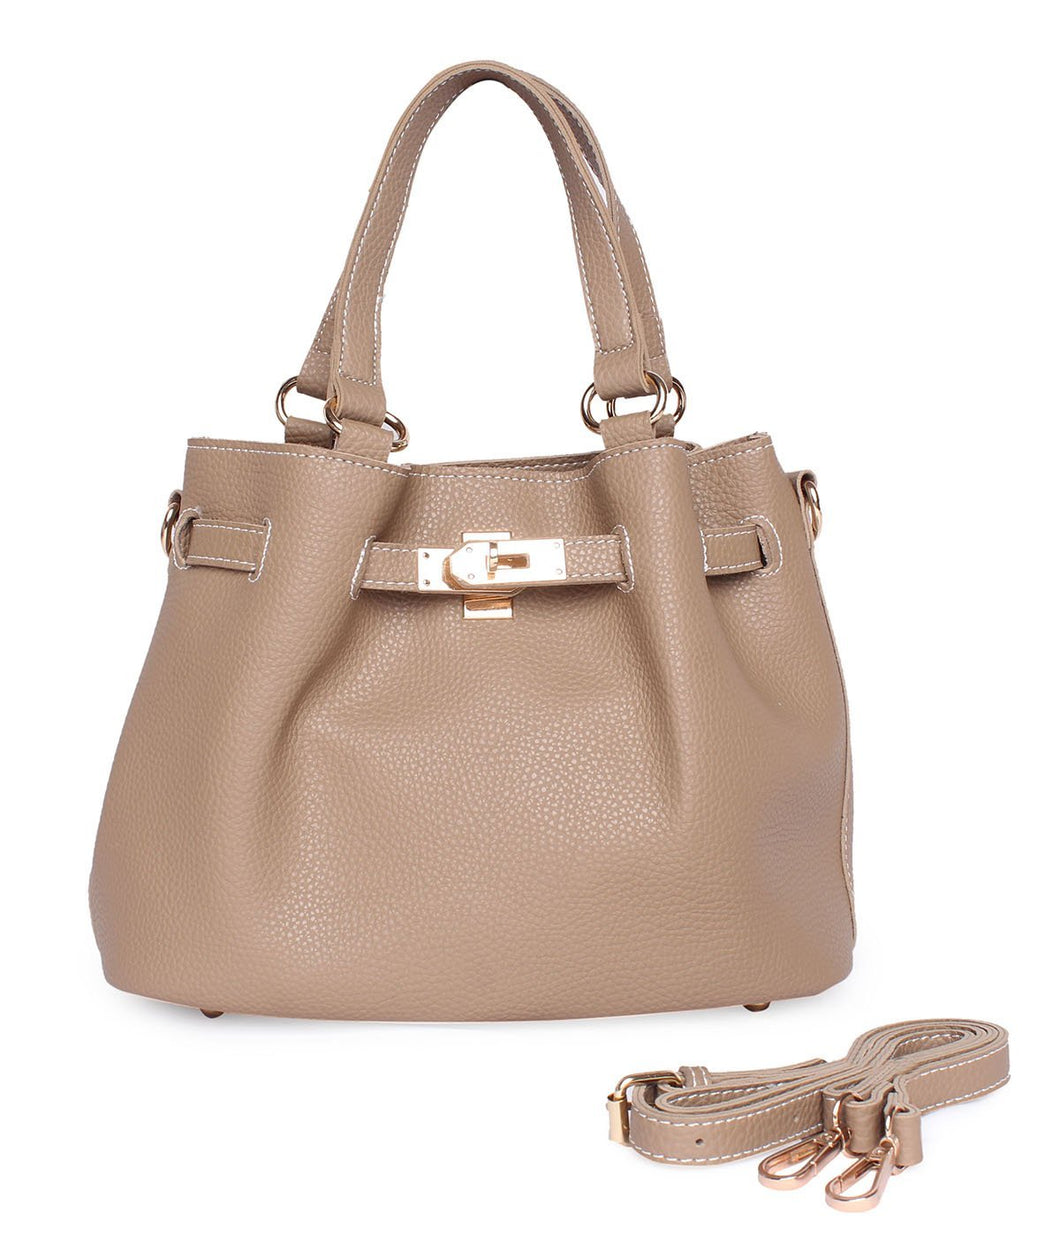 The Stylish Handbag-Beige